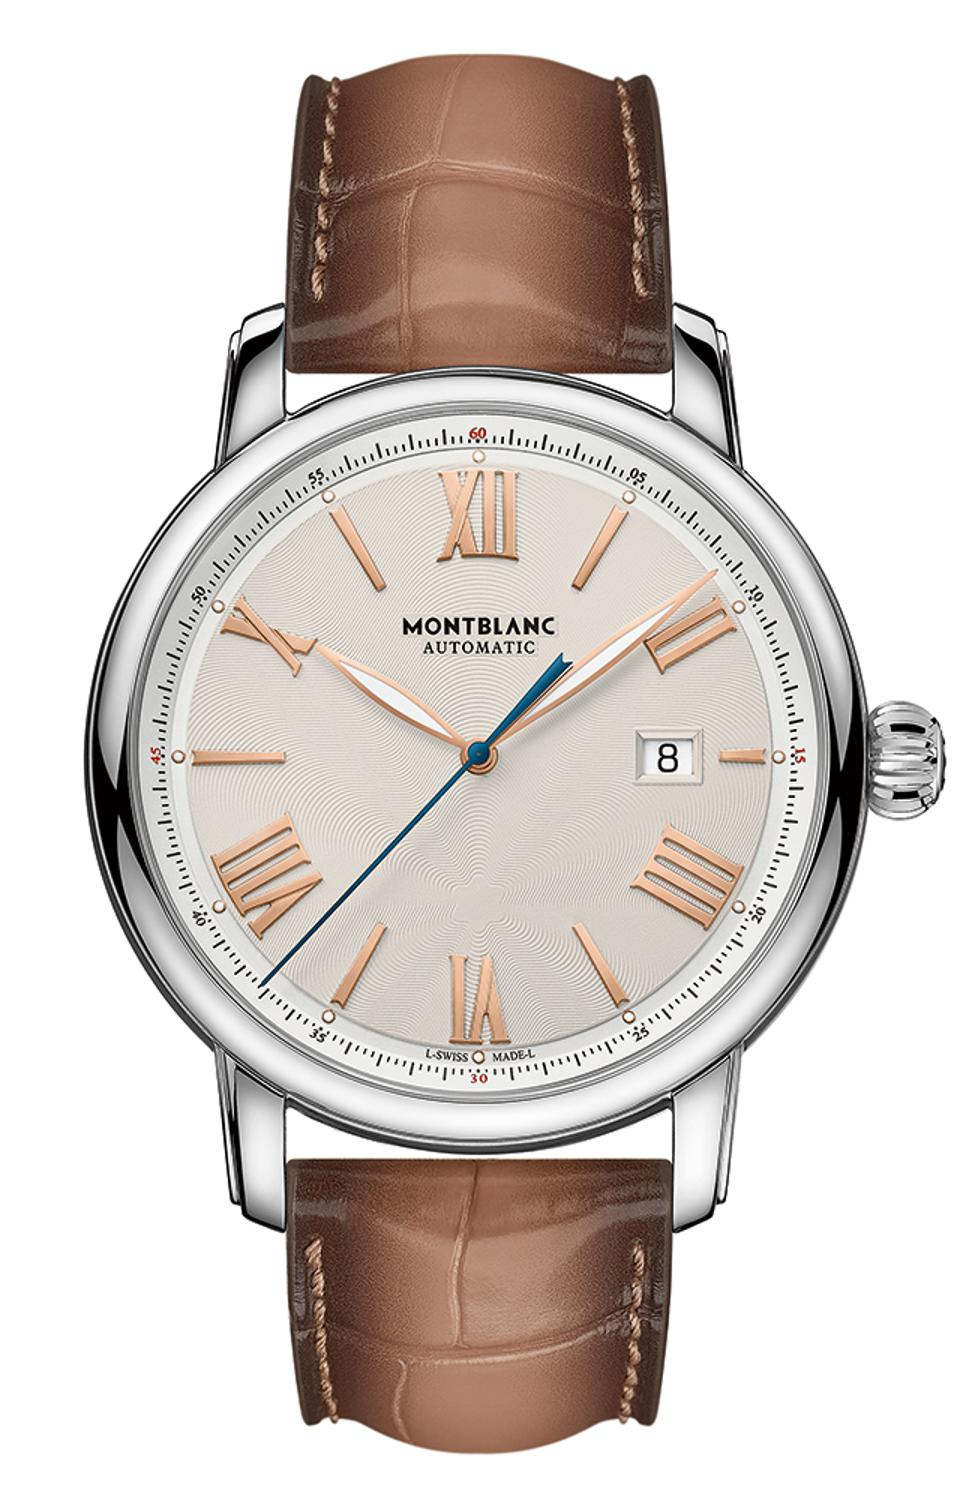 The Montblanc Star Legacy Date Automatic.